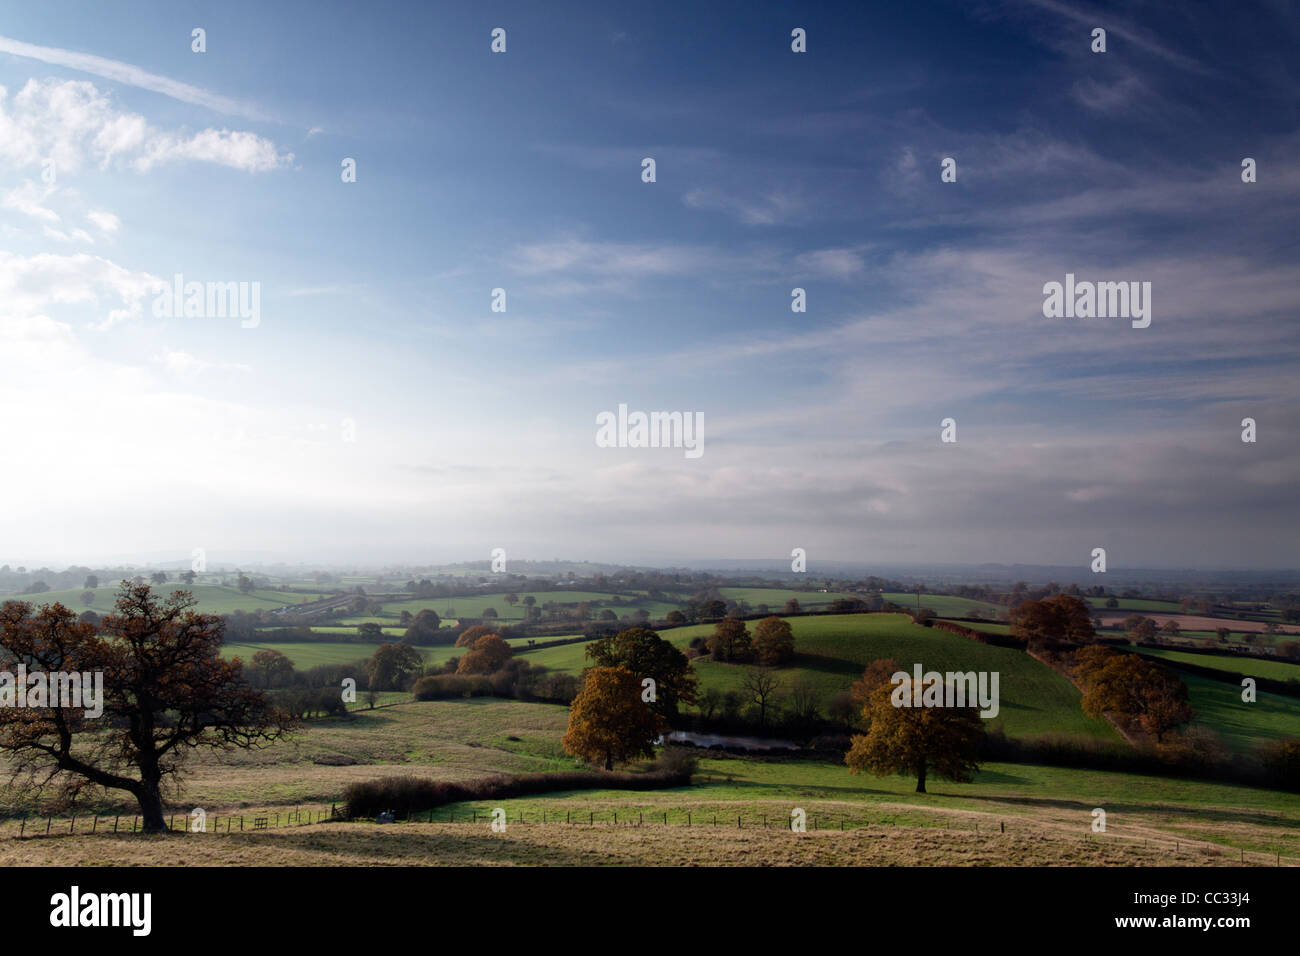 A view of the Blackmore Vale from St. James's Common, near Shaftesbury in Dorset, England. - Stock Image